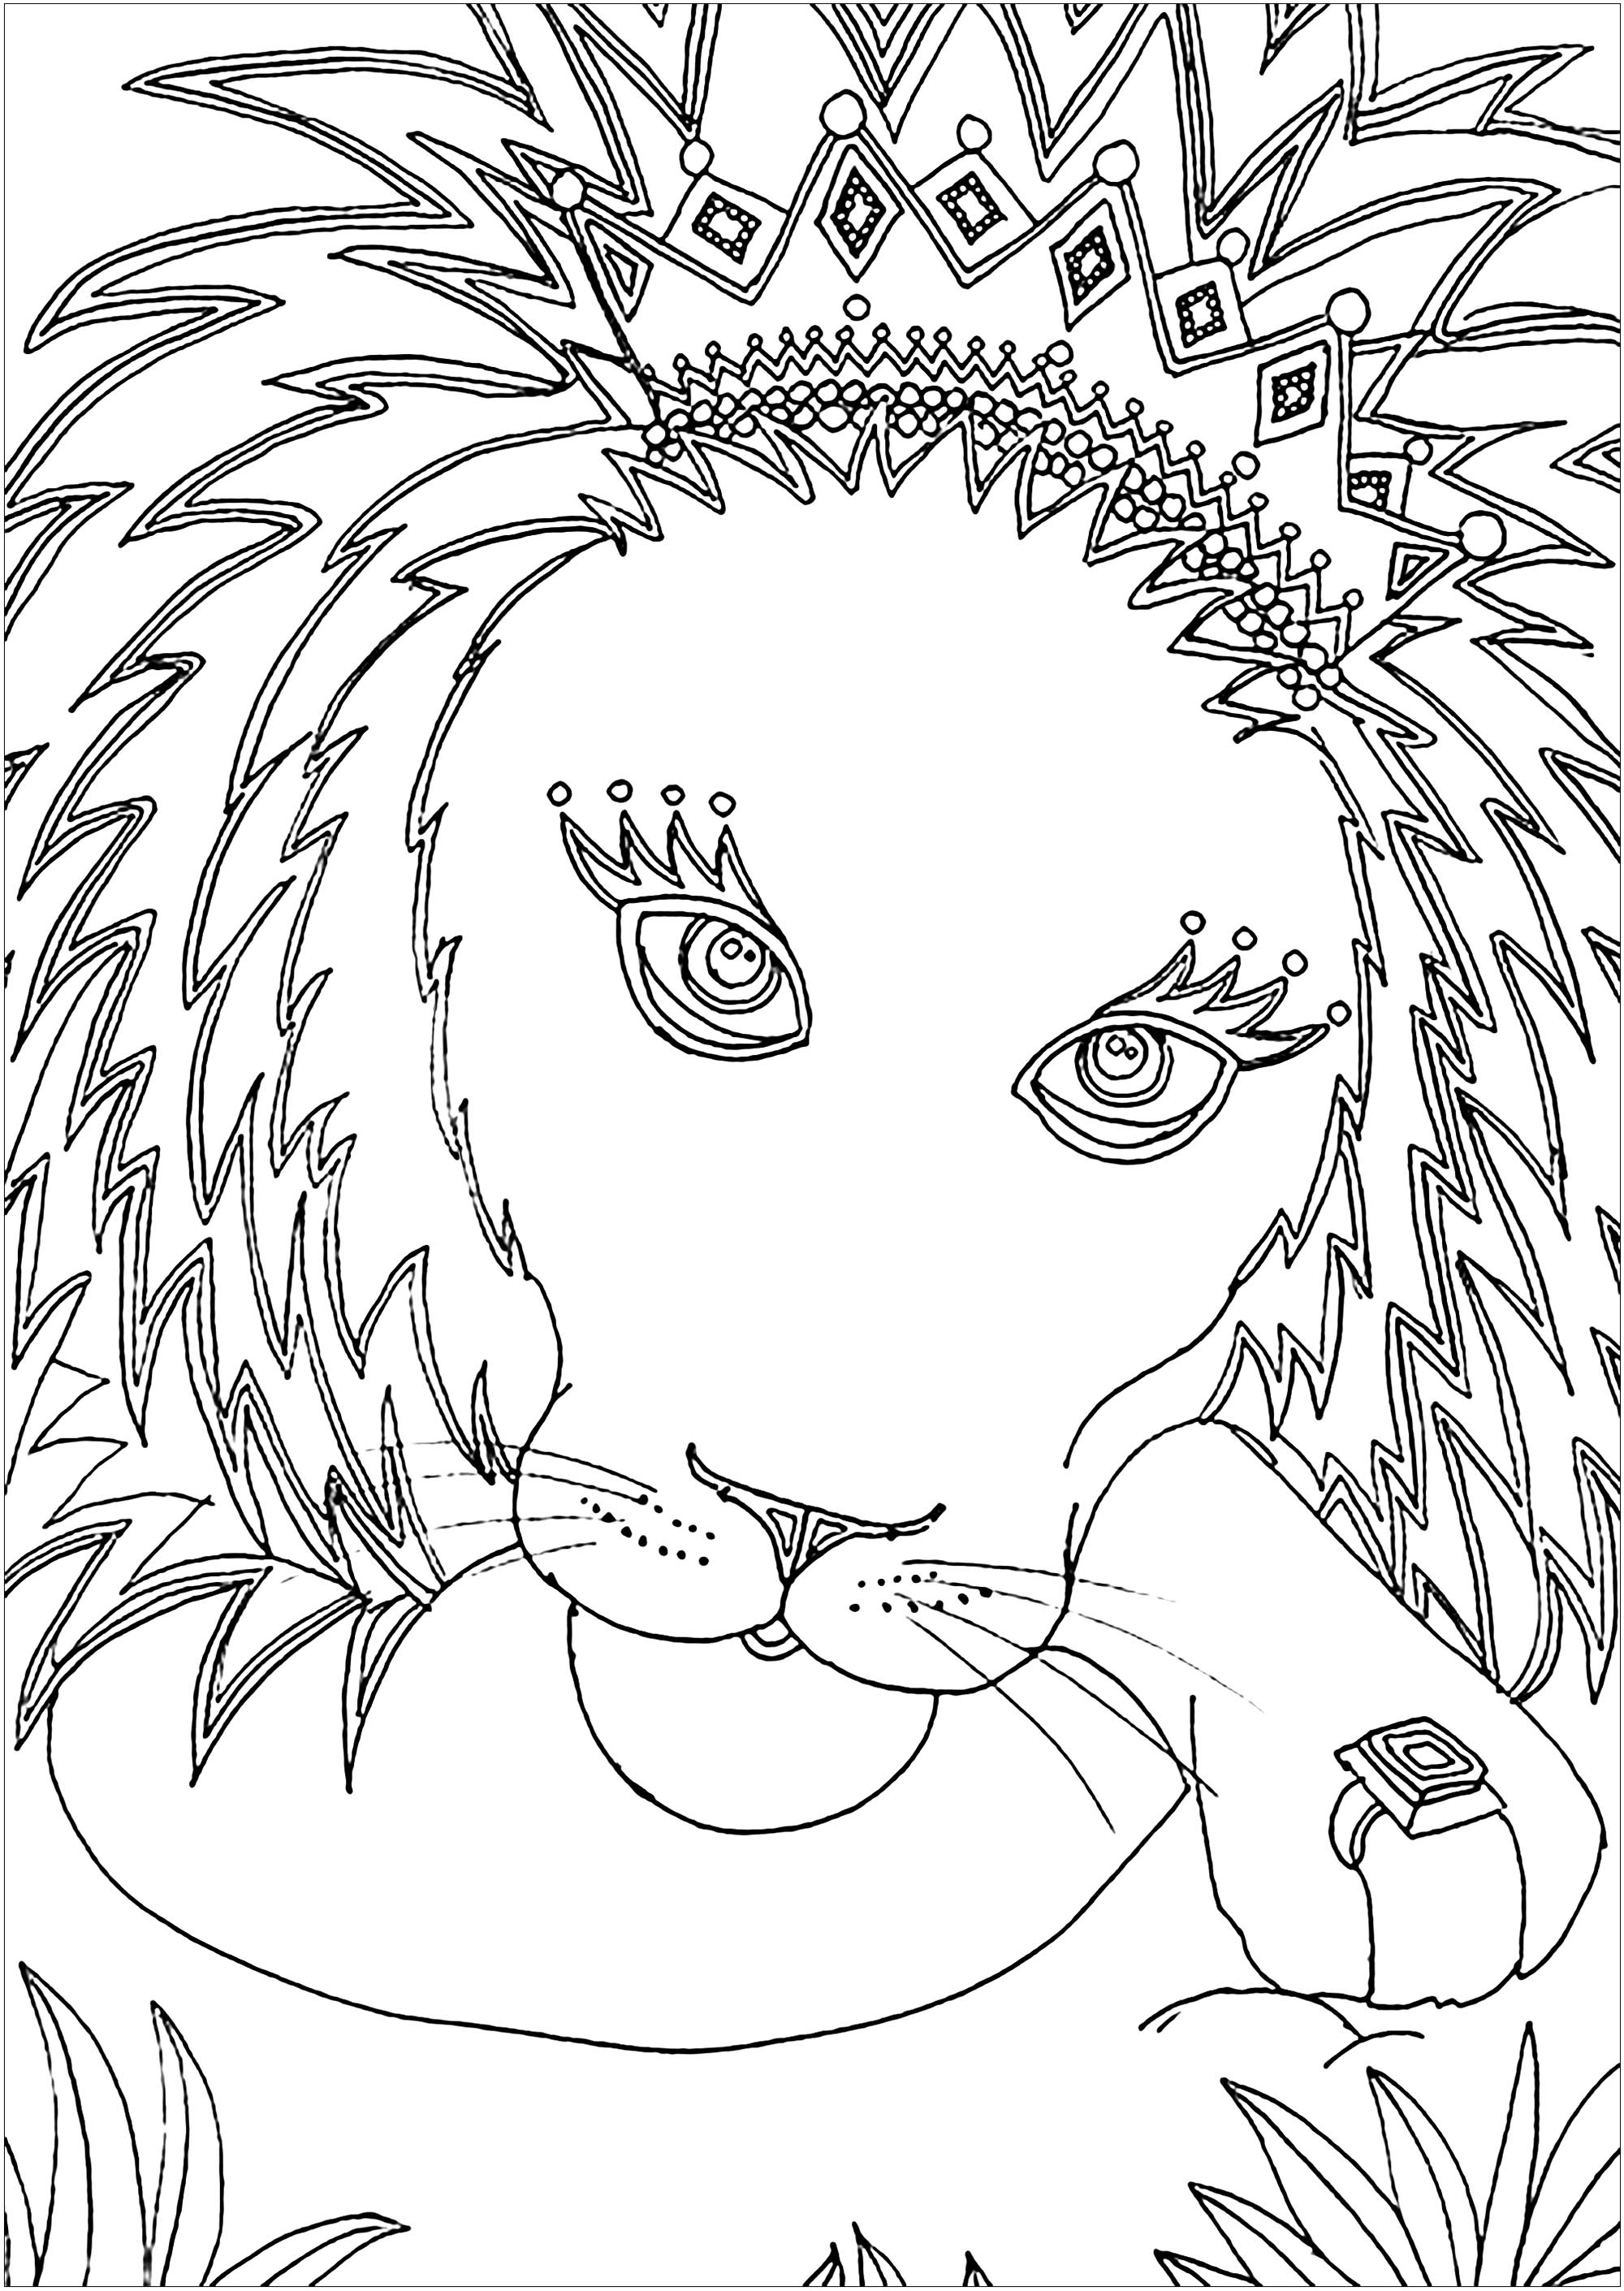 lion coloring image african lion coloring page free printable coloring pages image coloring lion